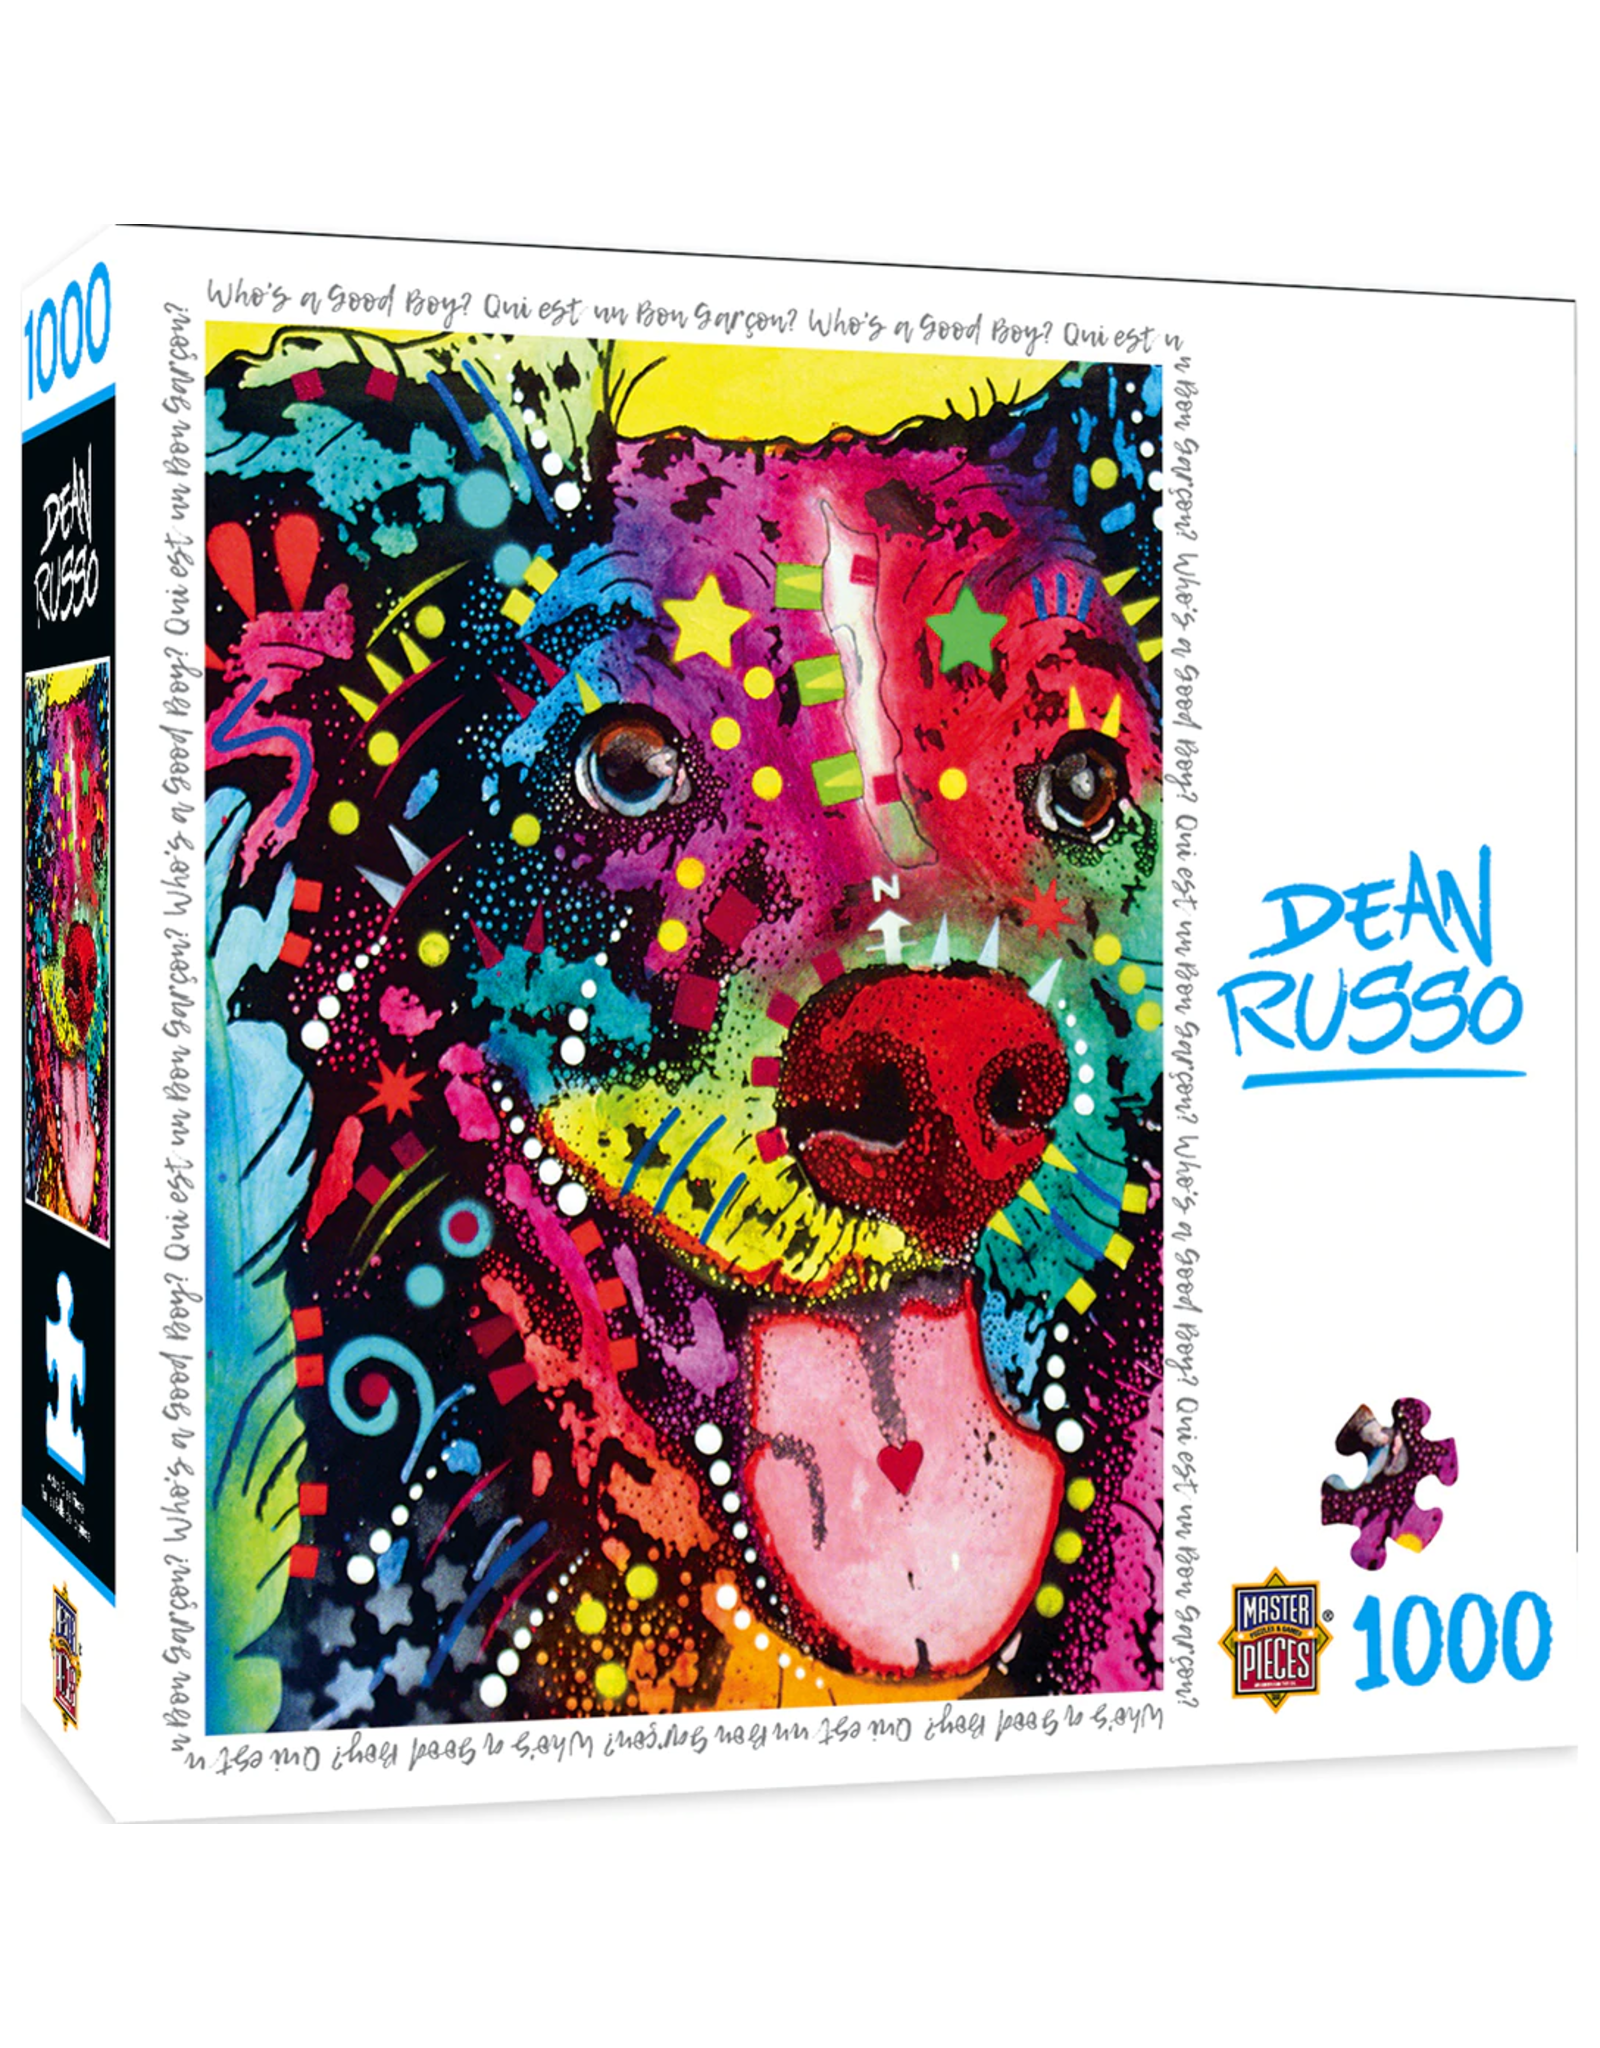 DEAN RUSSO WHO'S A GOOD BOY 1000 PIECE PUZZLE